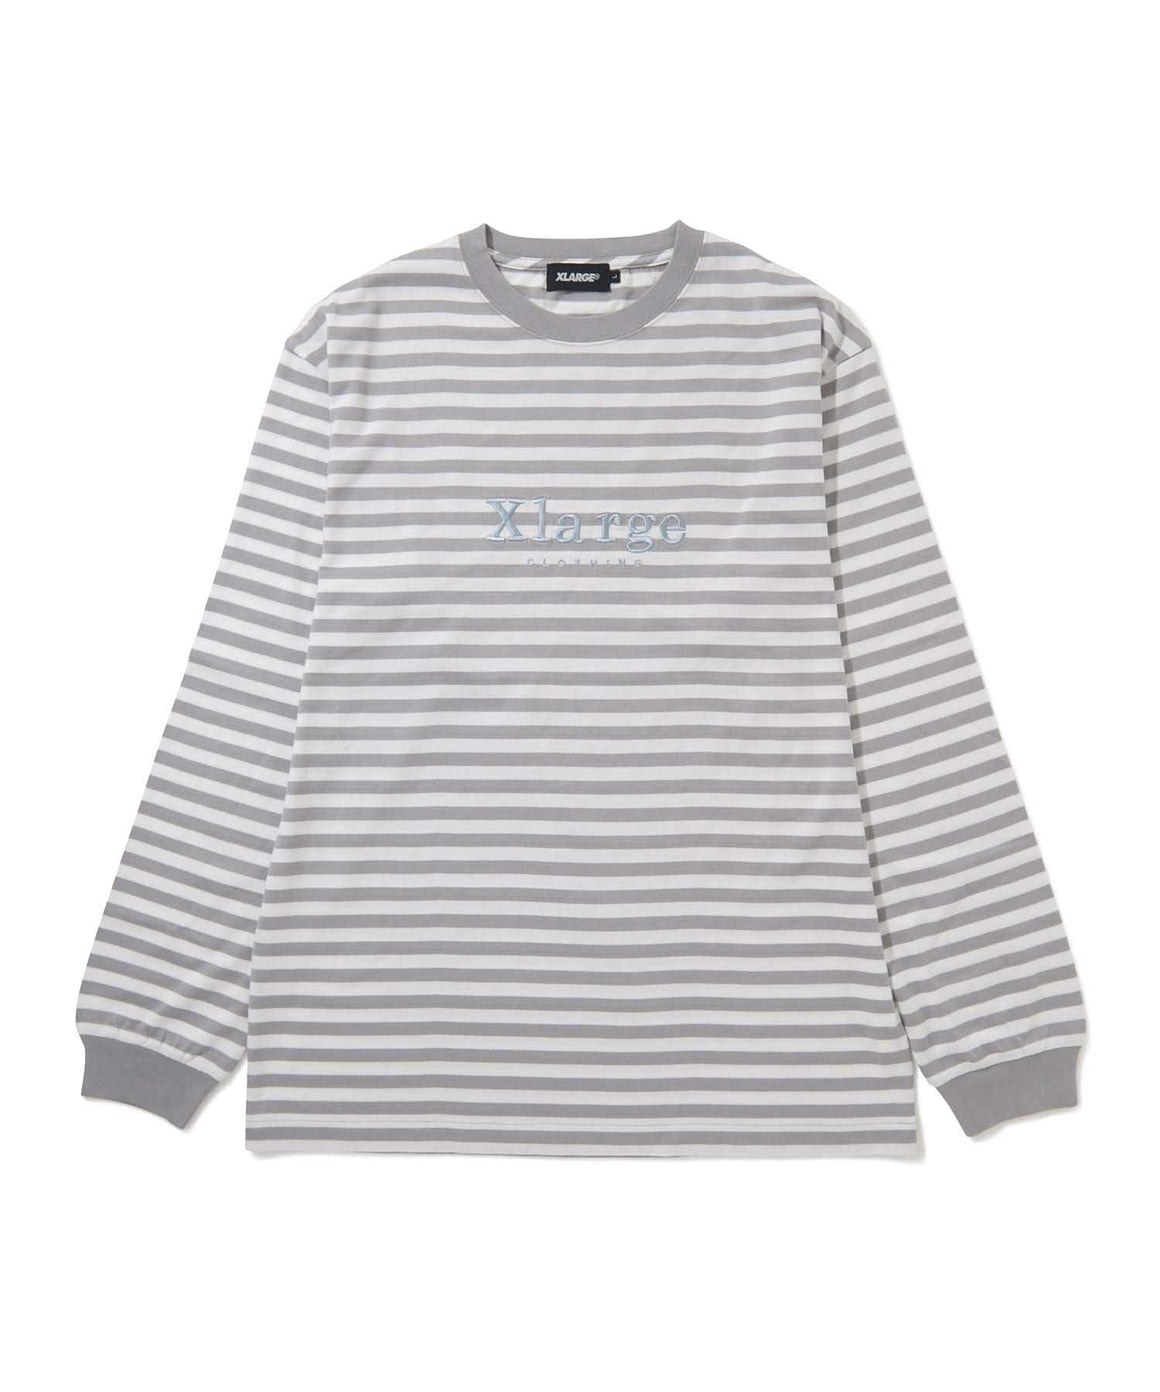 L/S EMBROIDERY BORDER TEE